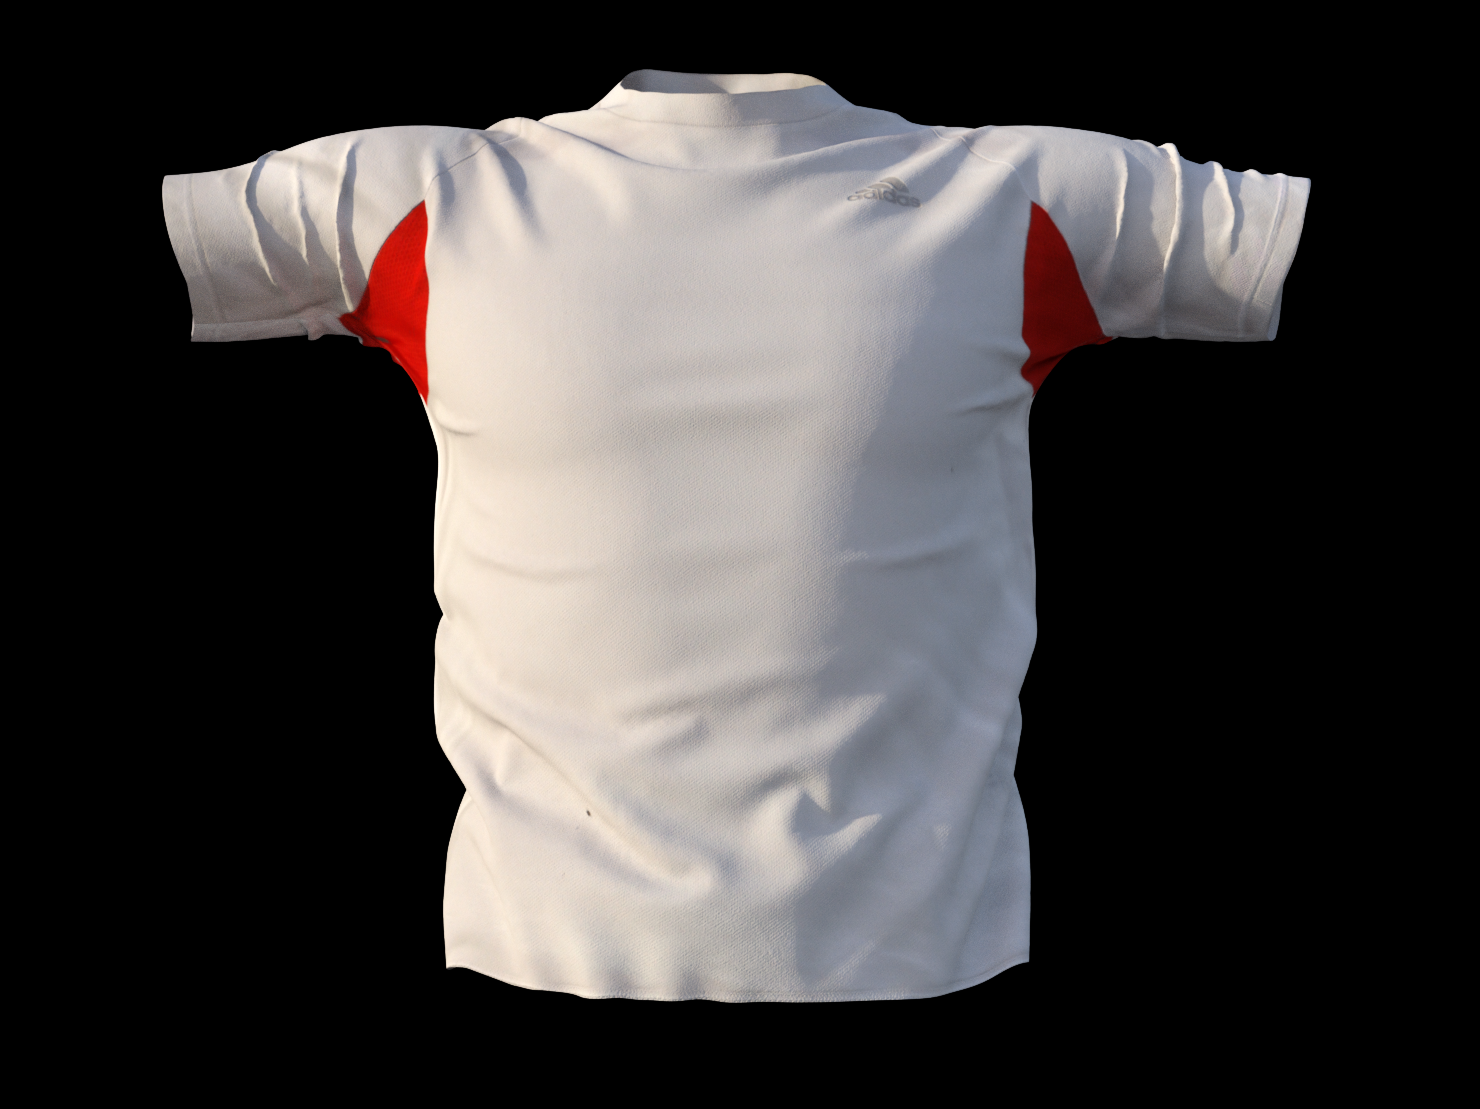 Realistic T-Shirt for Men 3D Model in Clothing 3DExport 2faa46afd831